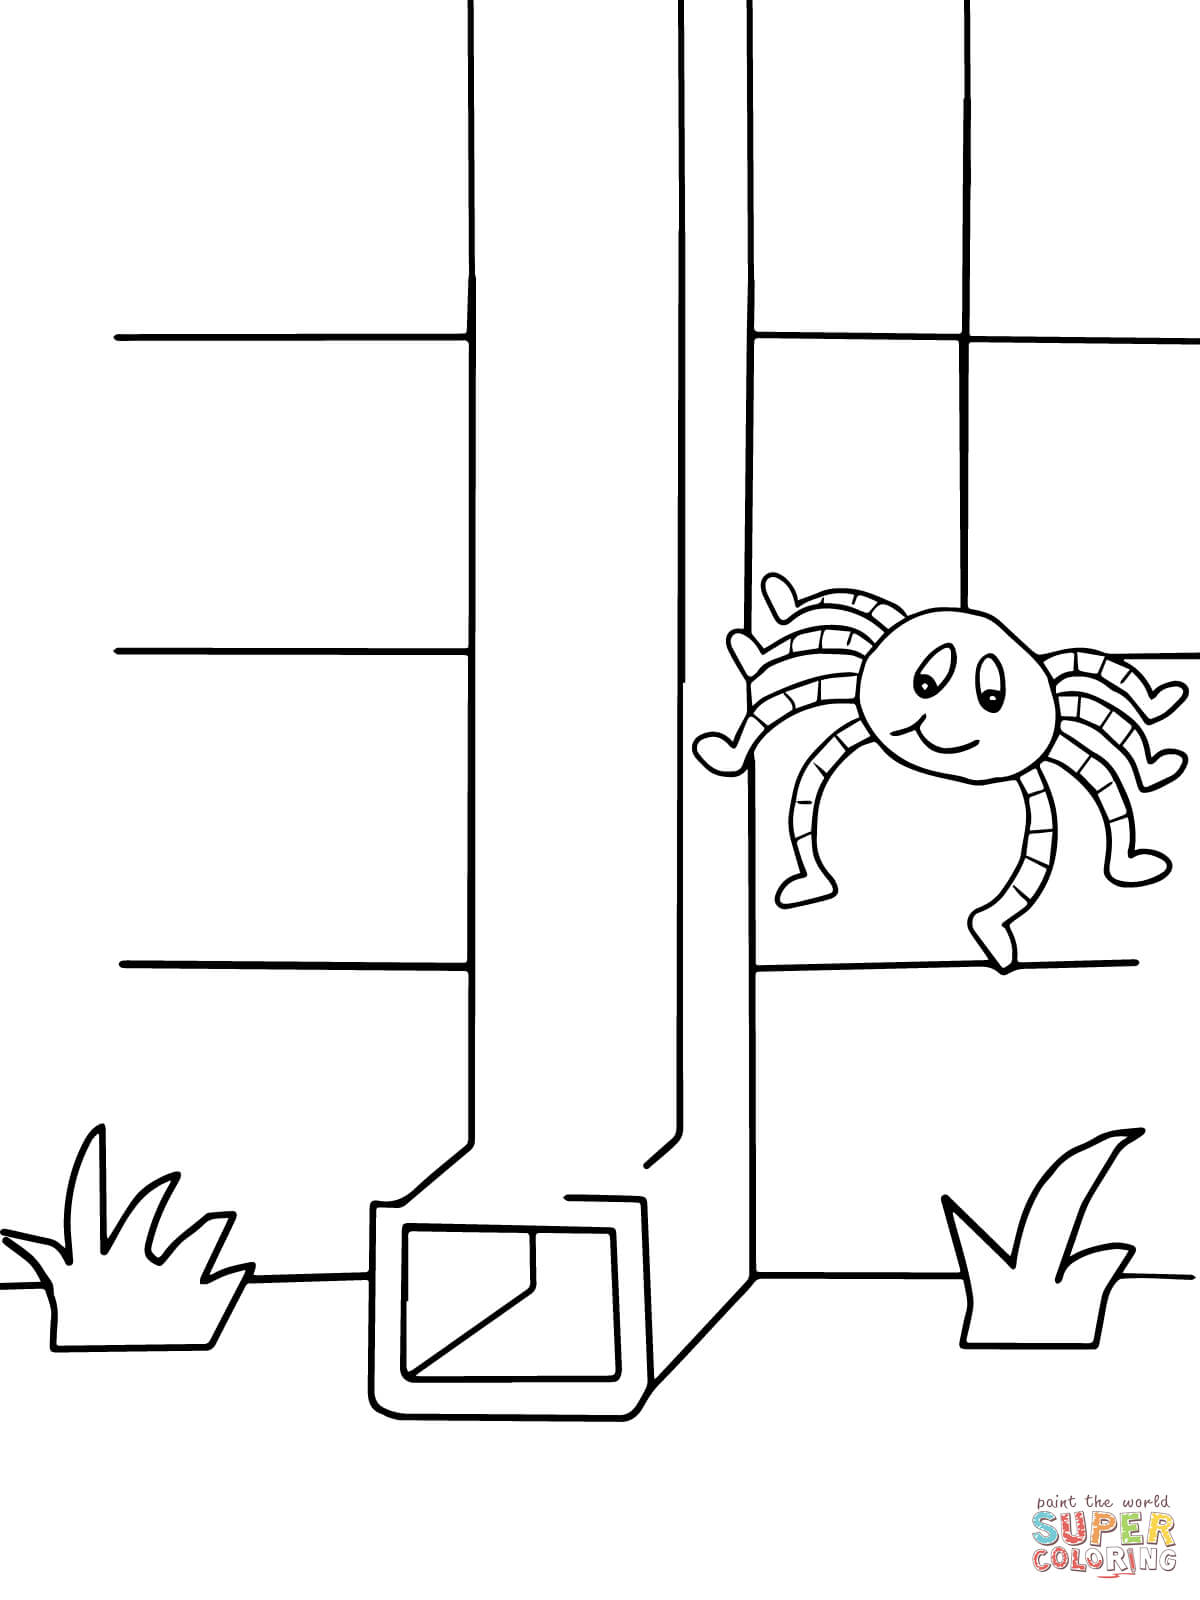 coloring page itsy bitsy spider halloween reading artwork itsy bitsy spider coloring coloring spider itsy page bitsy